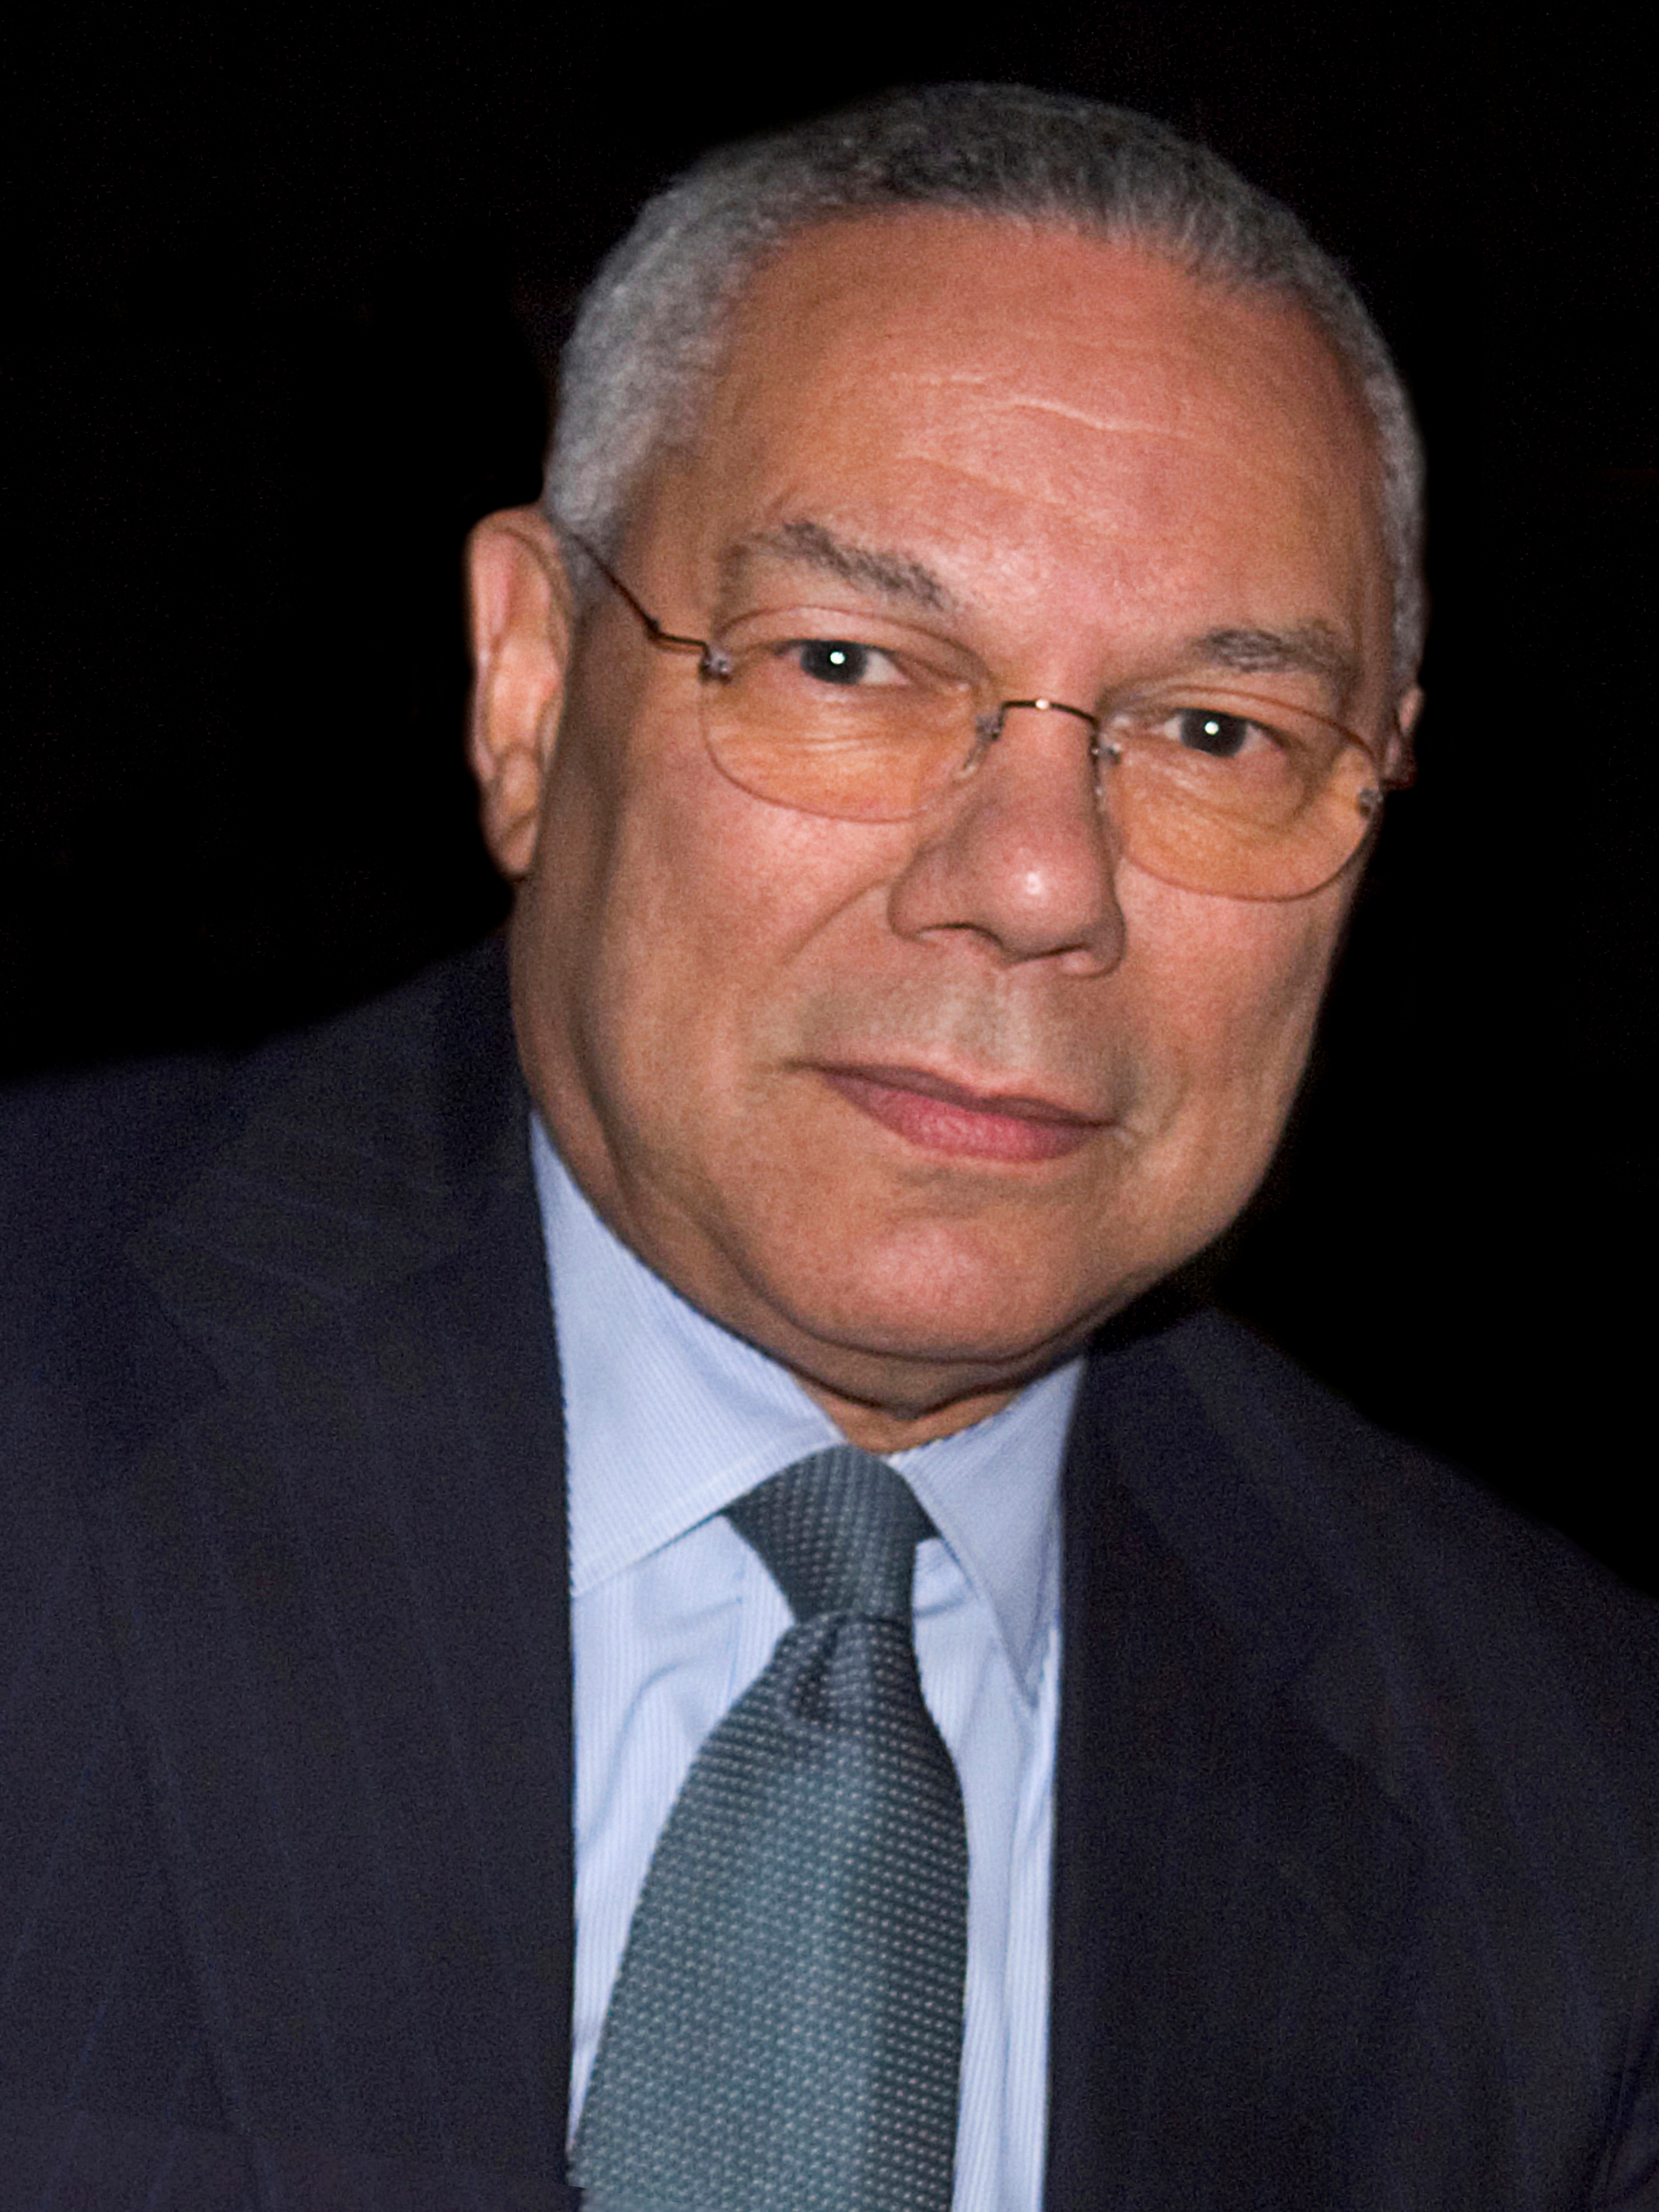 <b>Colin Powell</b> High Point University - Colin-Powell